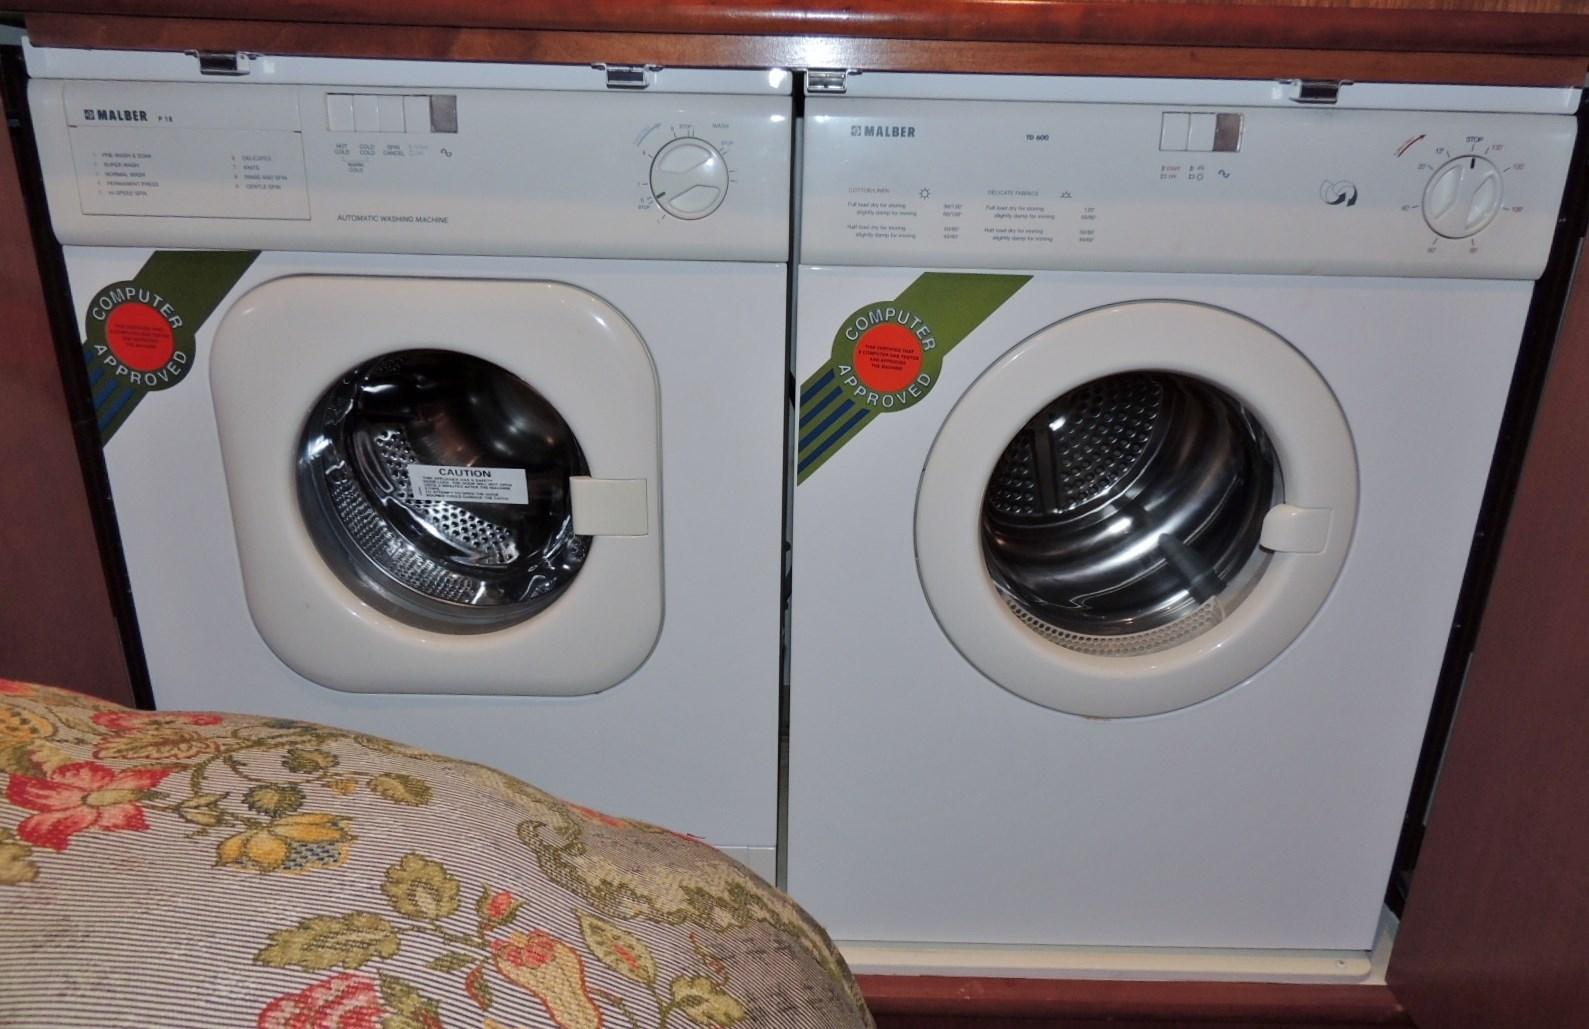 Yacht Sales Grandpappy Point Resort Marina Thread Fixed Kenmore 80 Series Electric Dryer Heating But Not 903 465 6330